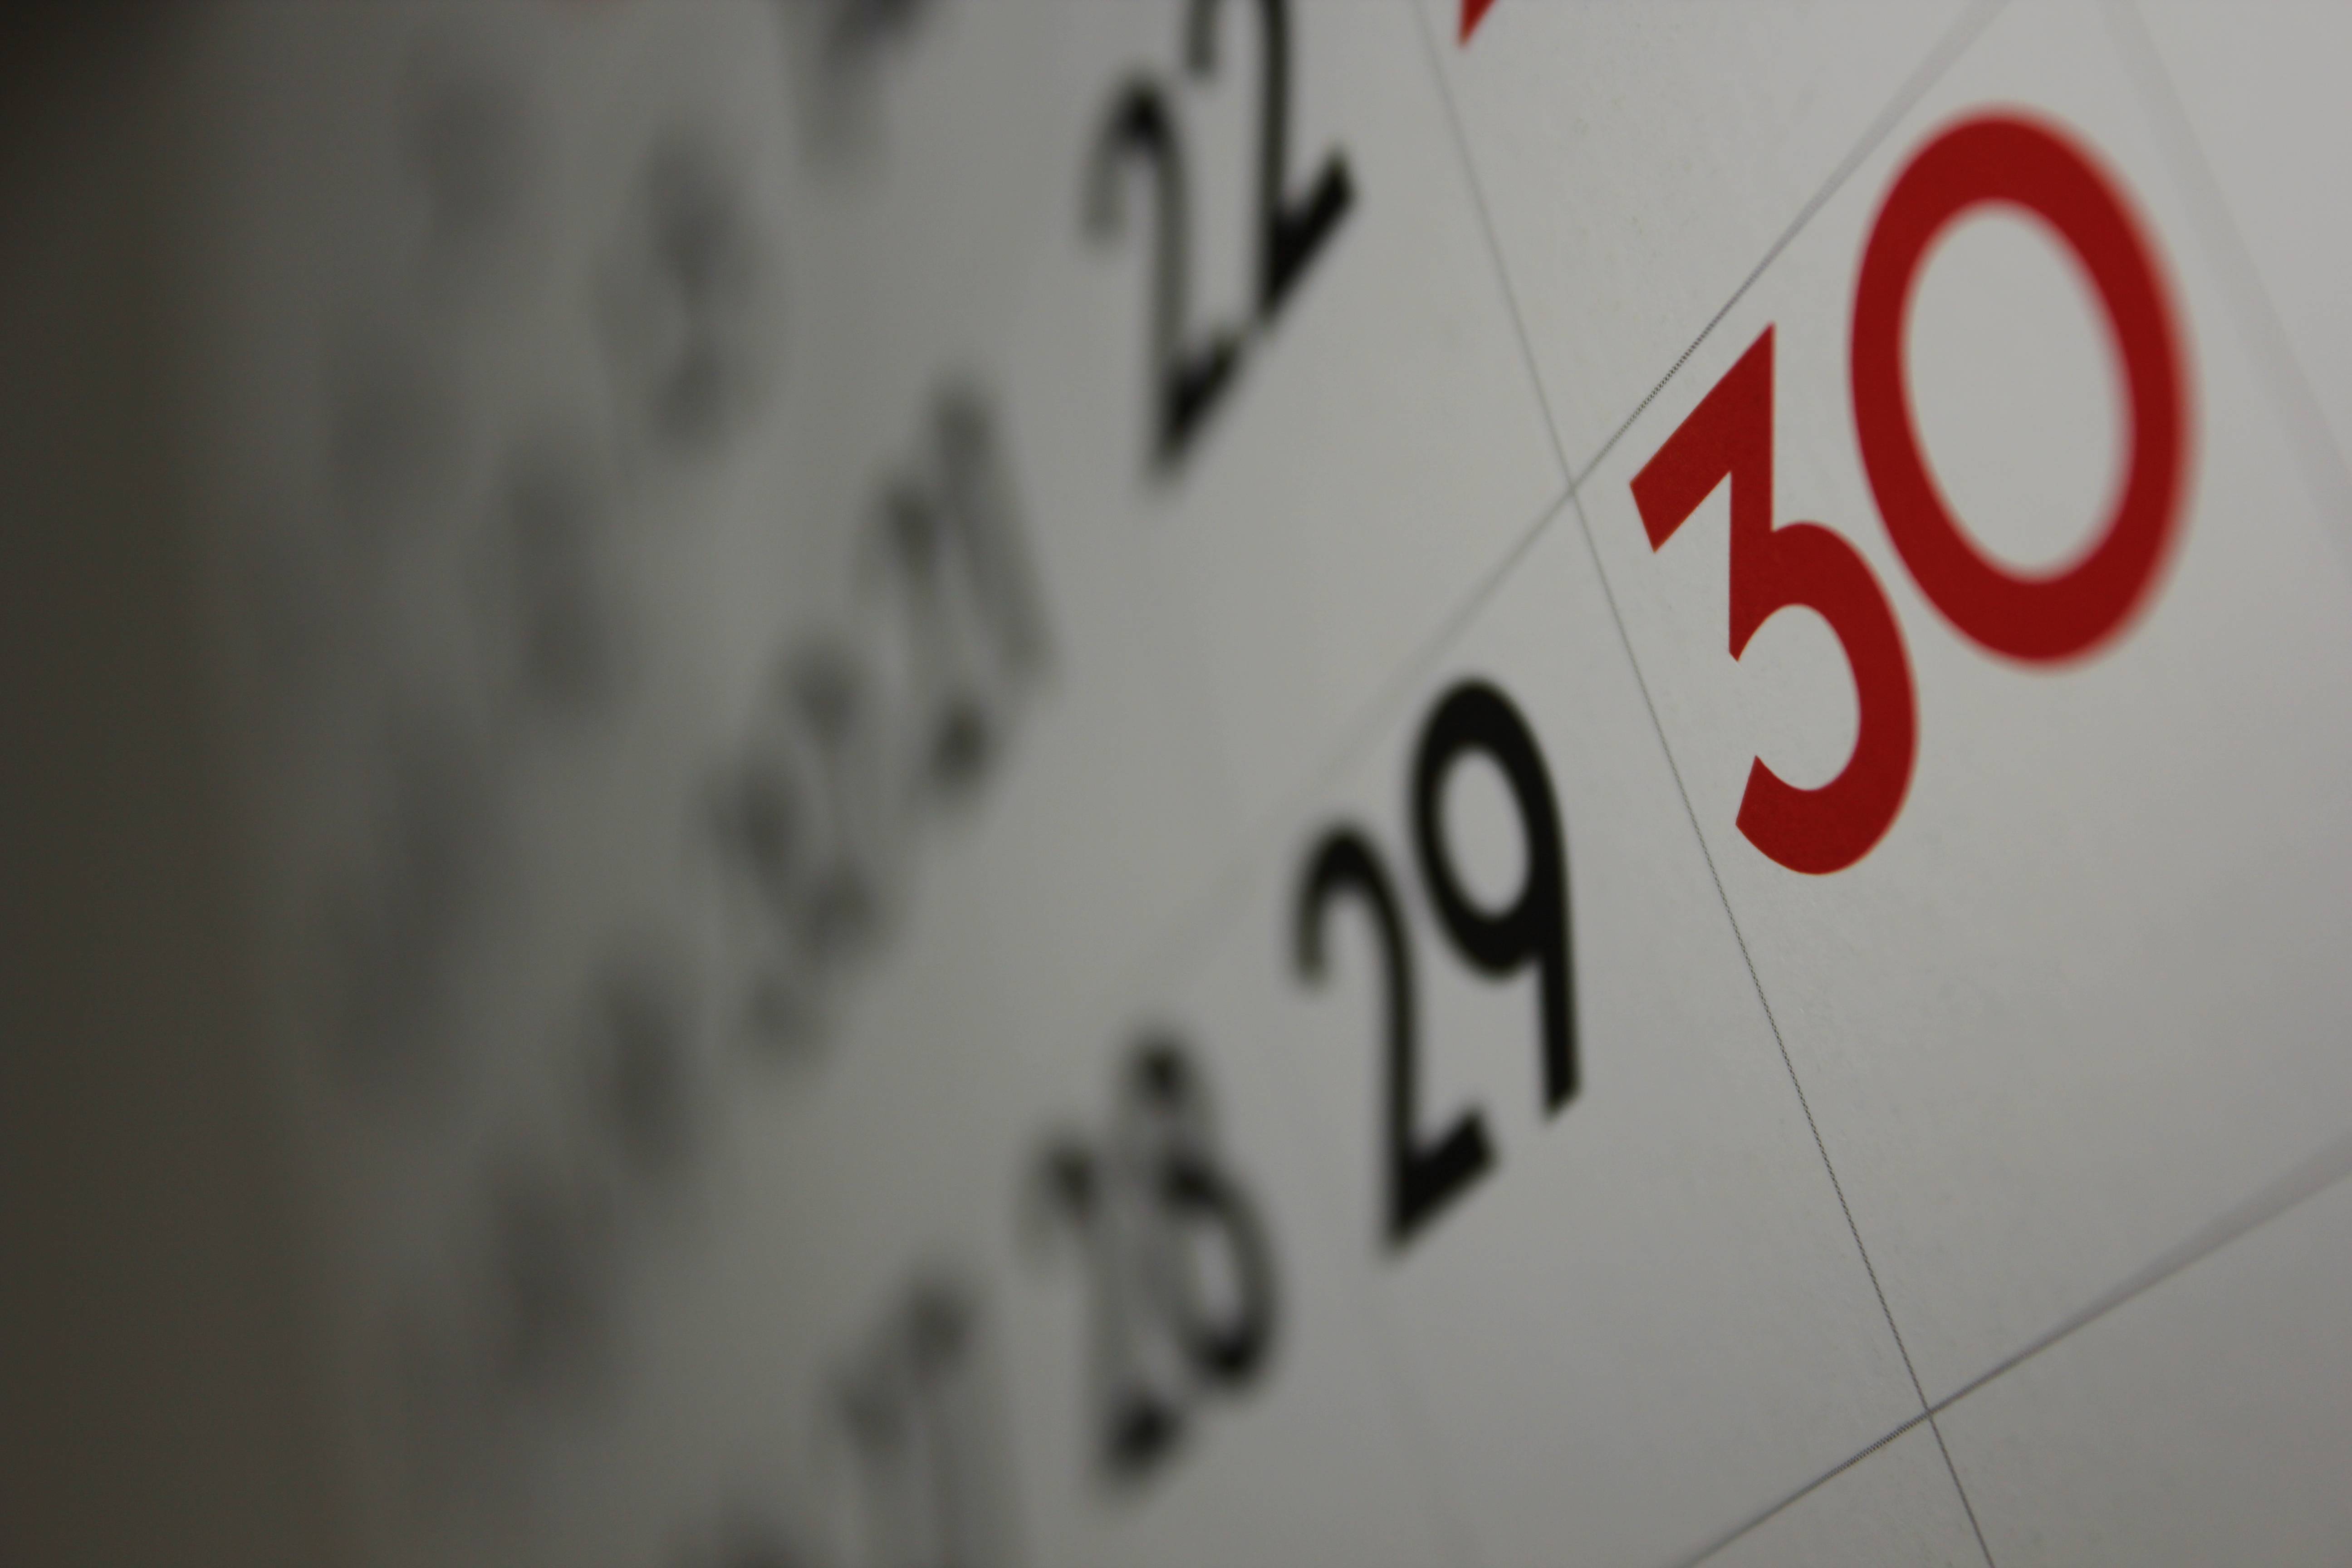 Zoomed in image of a calendar.